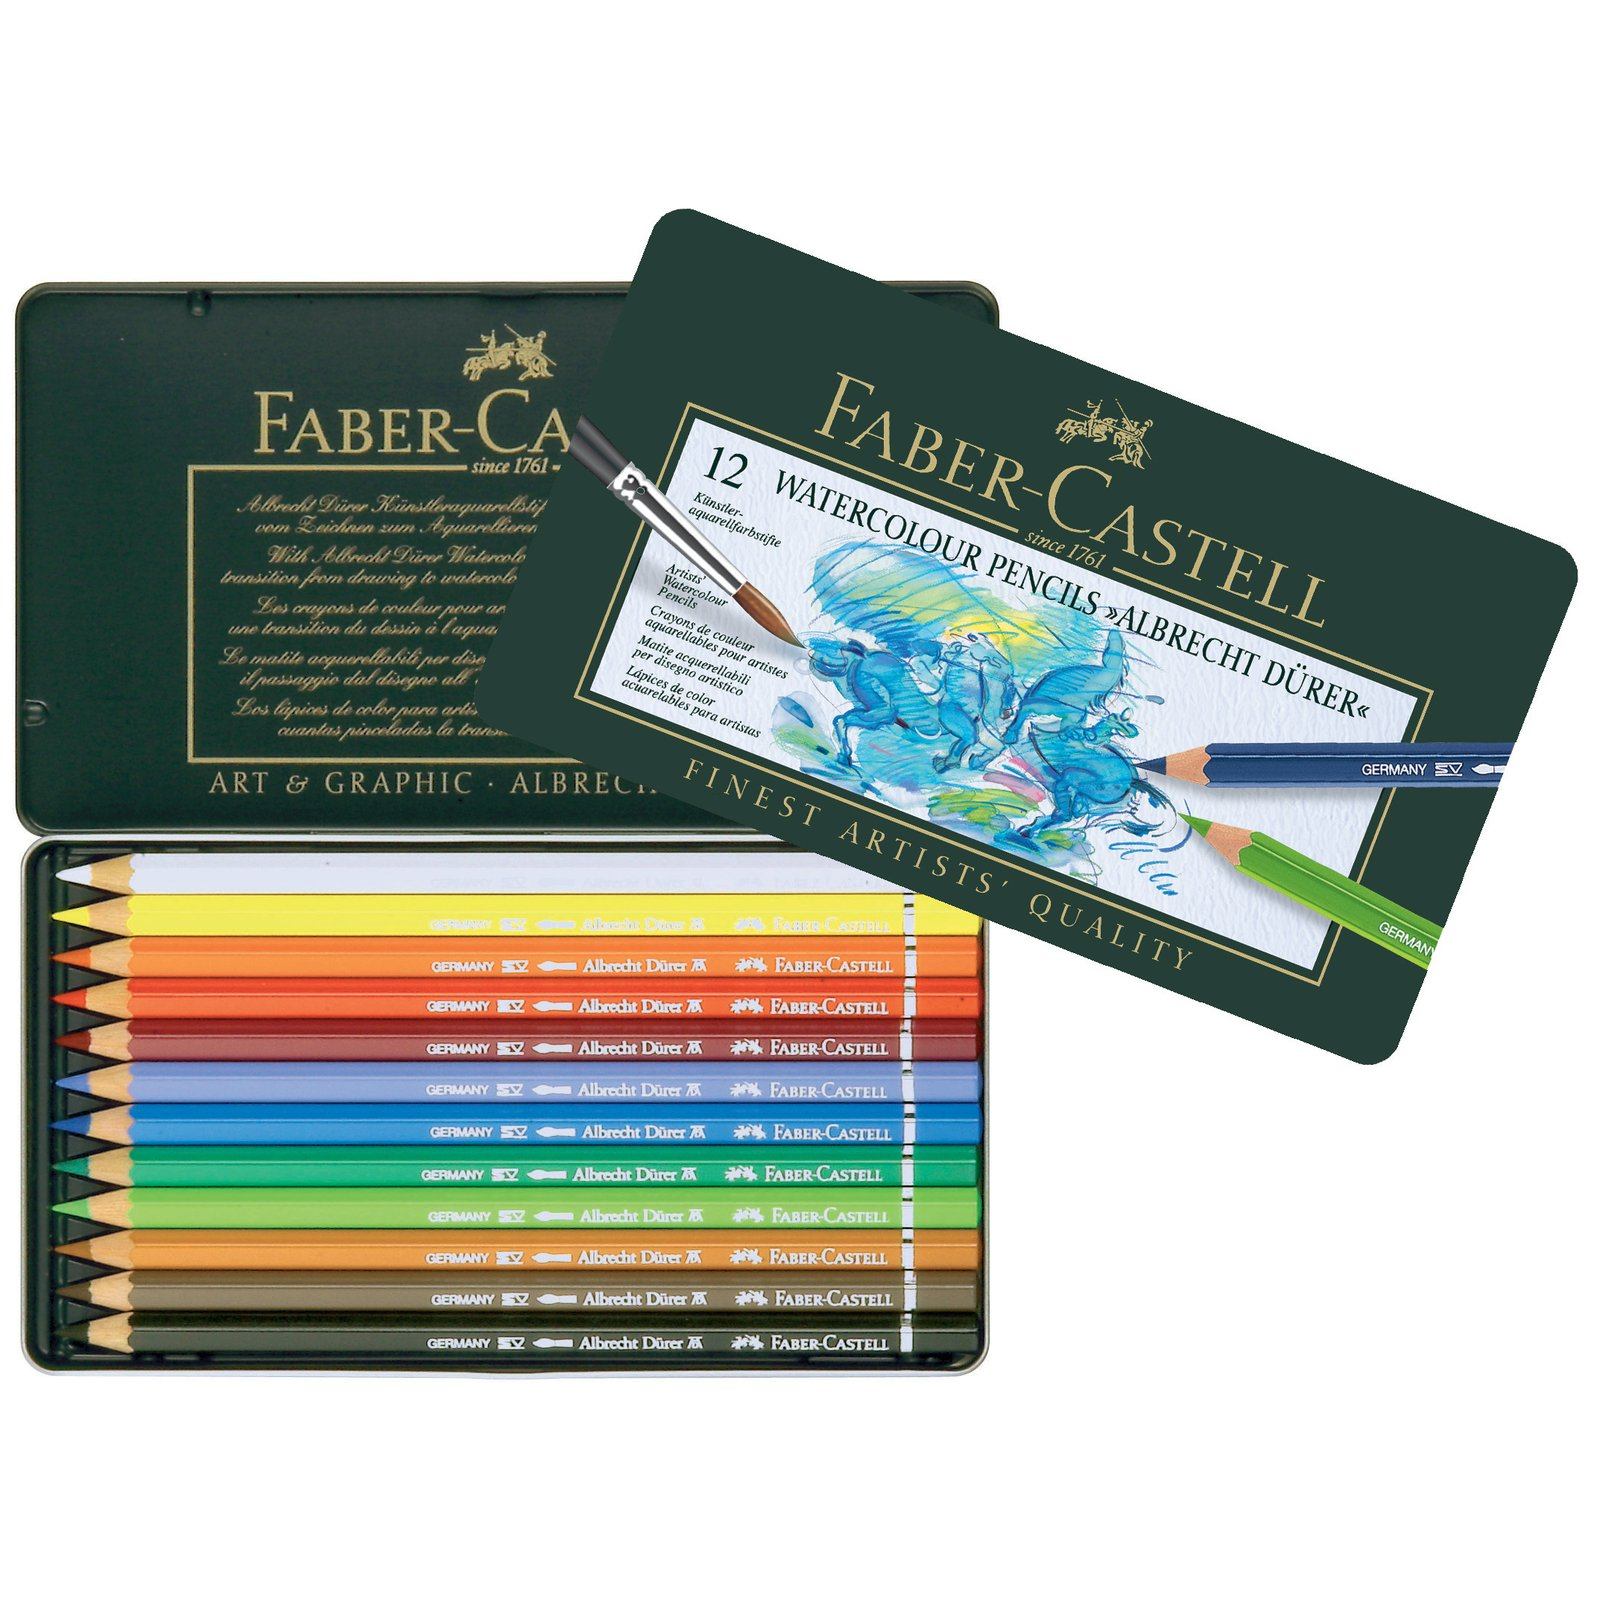 Faber Castell Albrecht Dürer Watercolor Pencils 12 Set